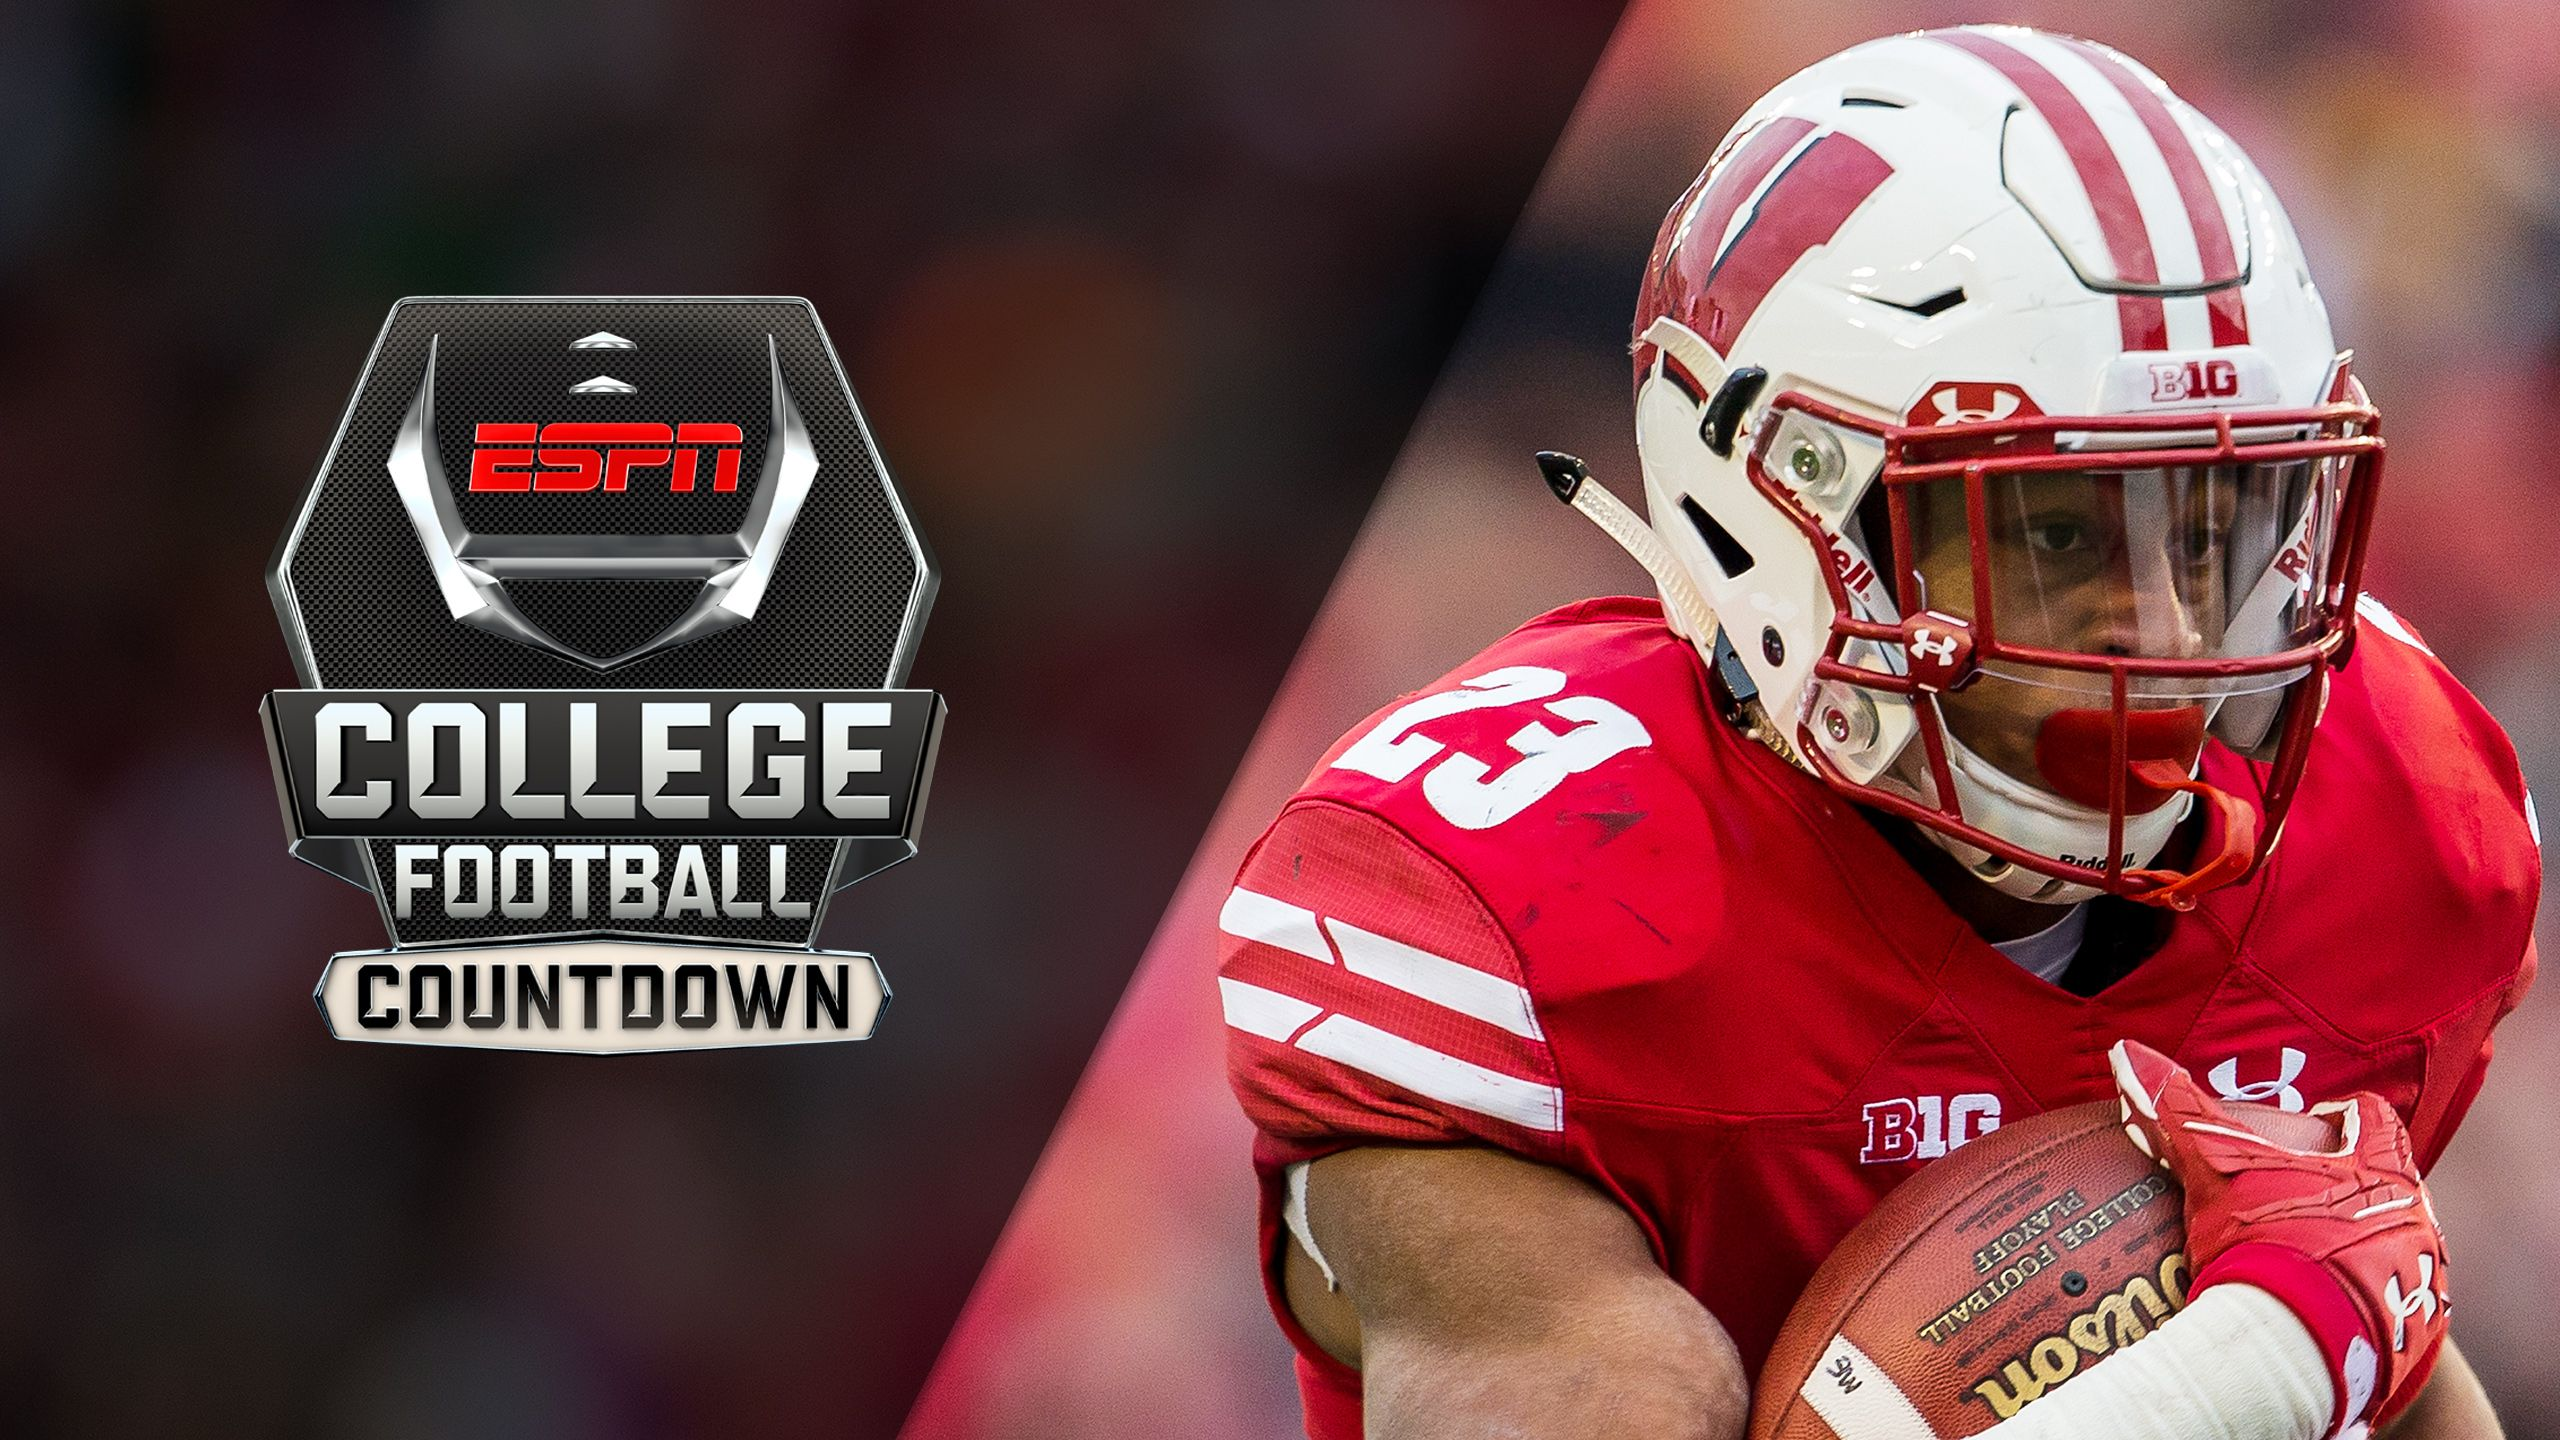 Thu, 11/16 - College Football Countdown Presented by Papa John's